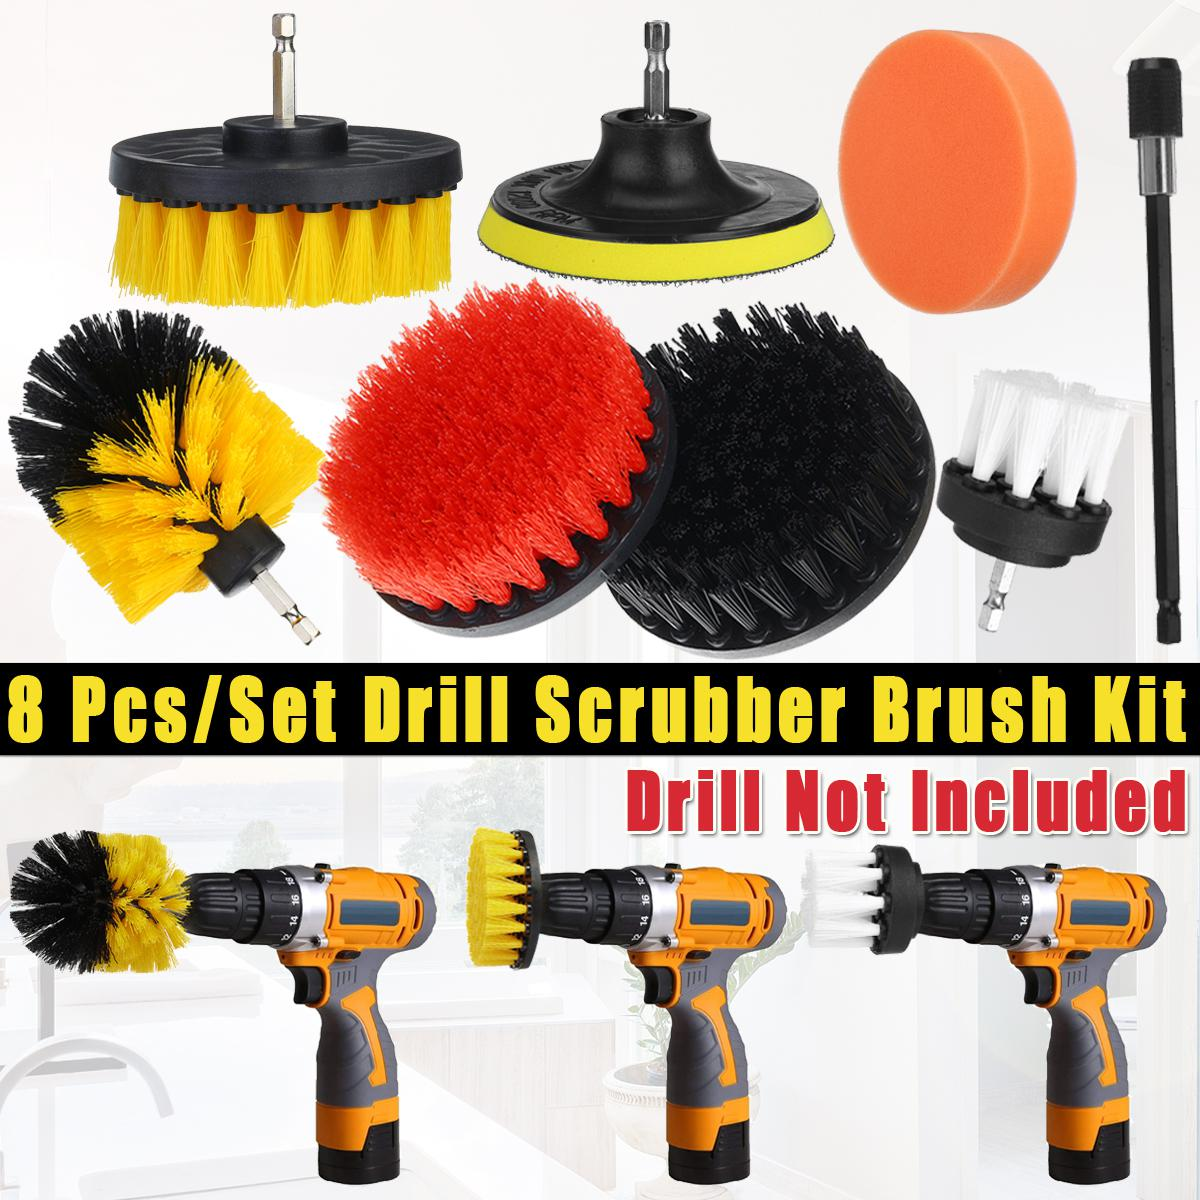 8pcs set power scrubber drill brush kit all purpose cleaner scrubbing cordless drill for cleaning kitchen bathroom pool tile 8pcs